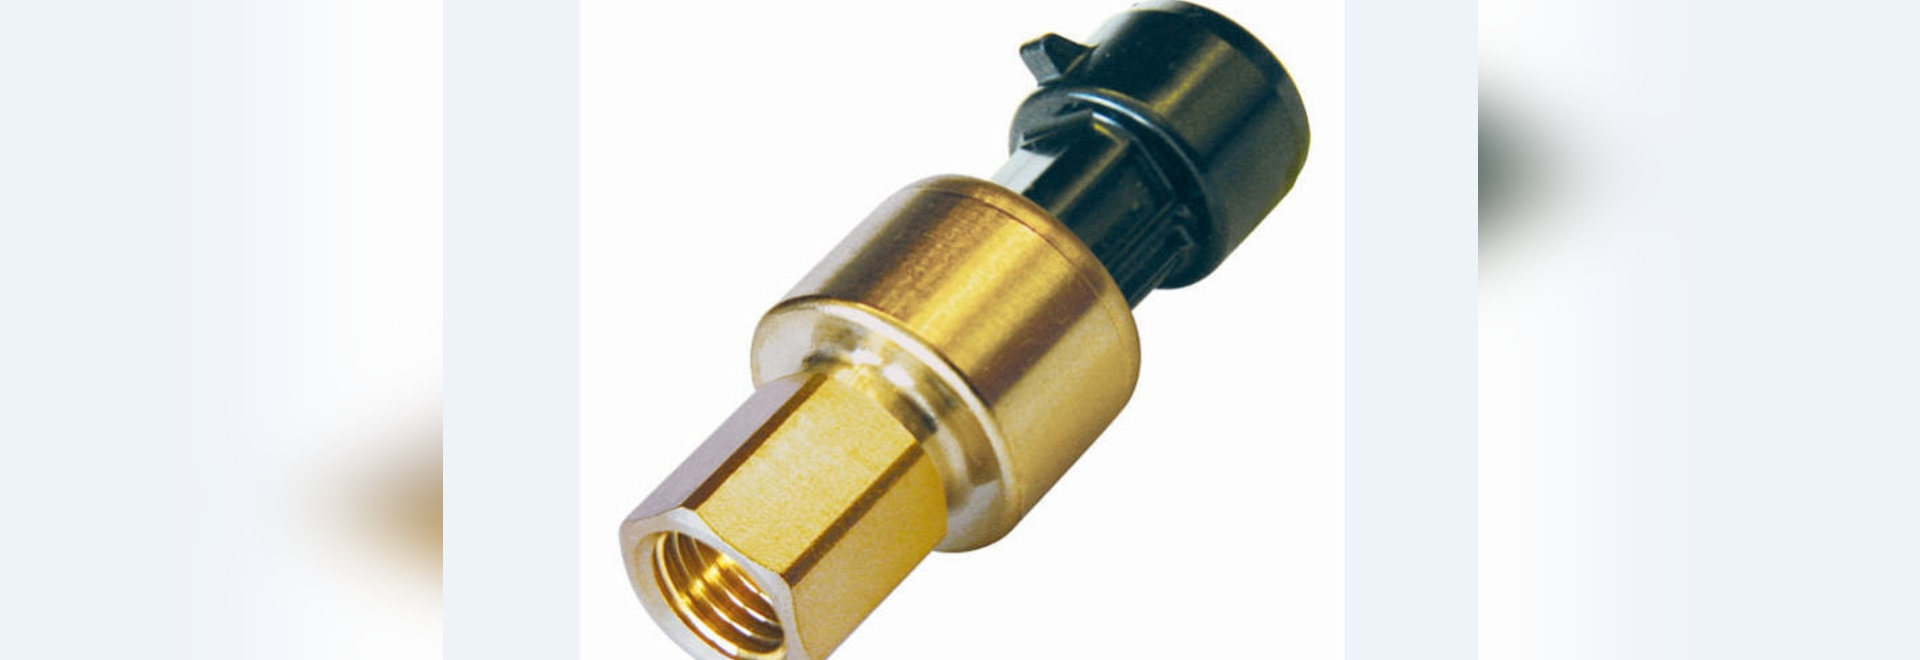 A new excellent pressure transducer